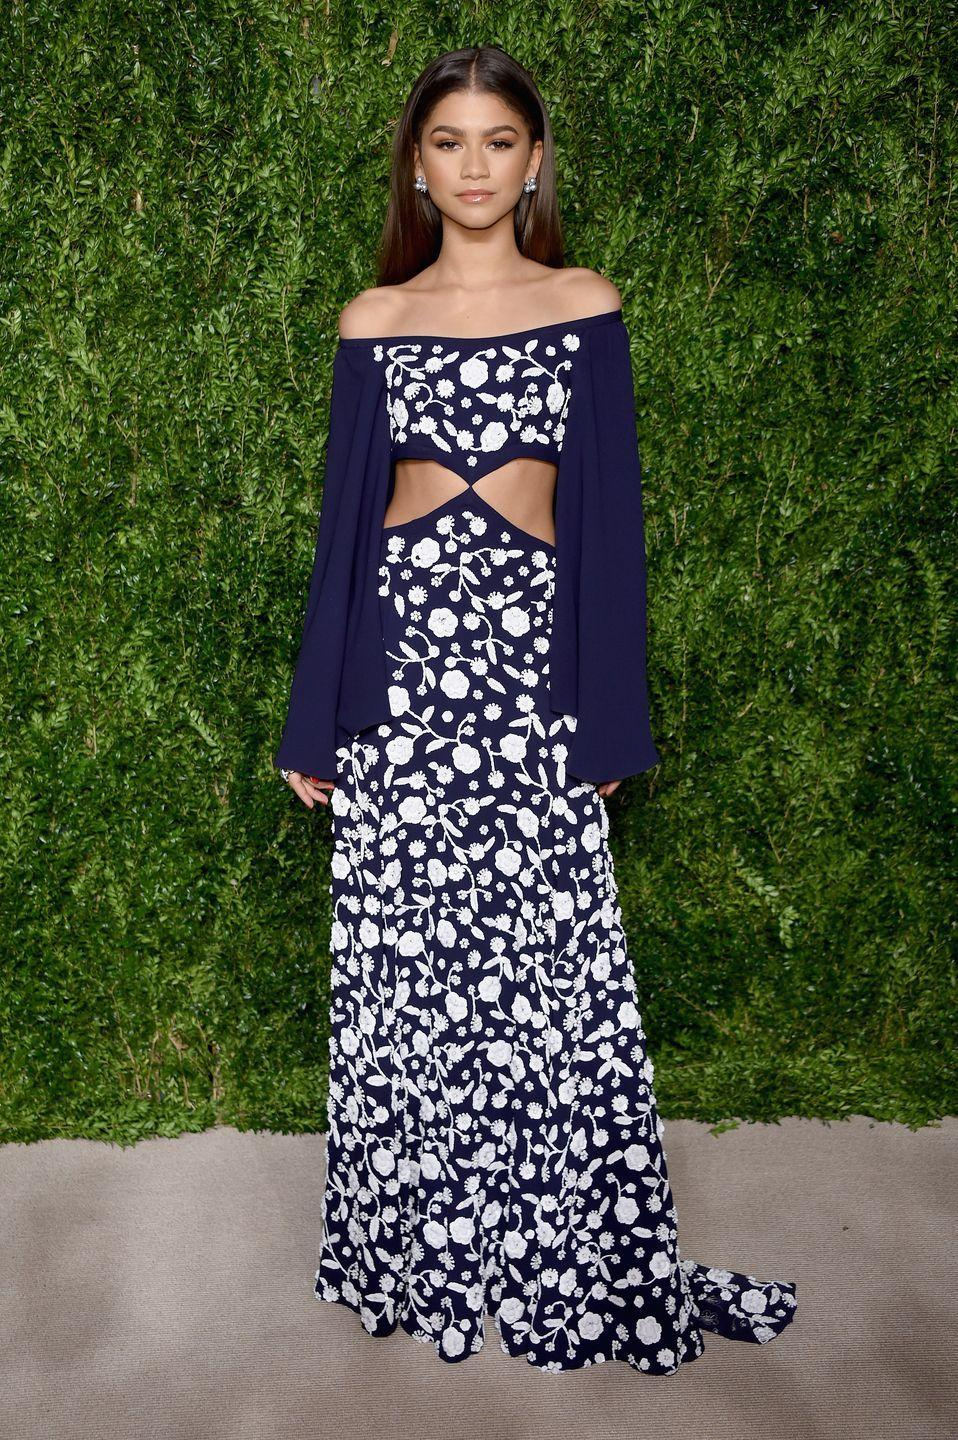 <p>Who doesn't love some nice embroidery? At the 2016 CFDA/Vogue Fashion Fund Awards, she wore this detailed Michael Kors Collection dress with contrasting white florals. </p>